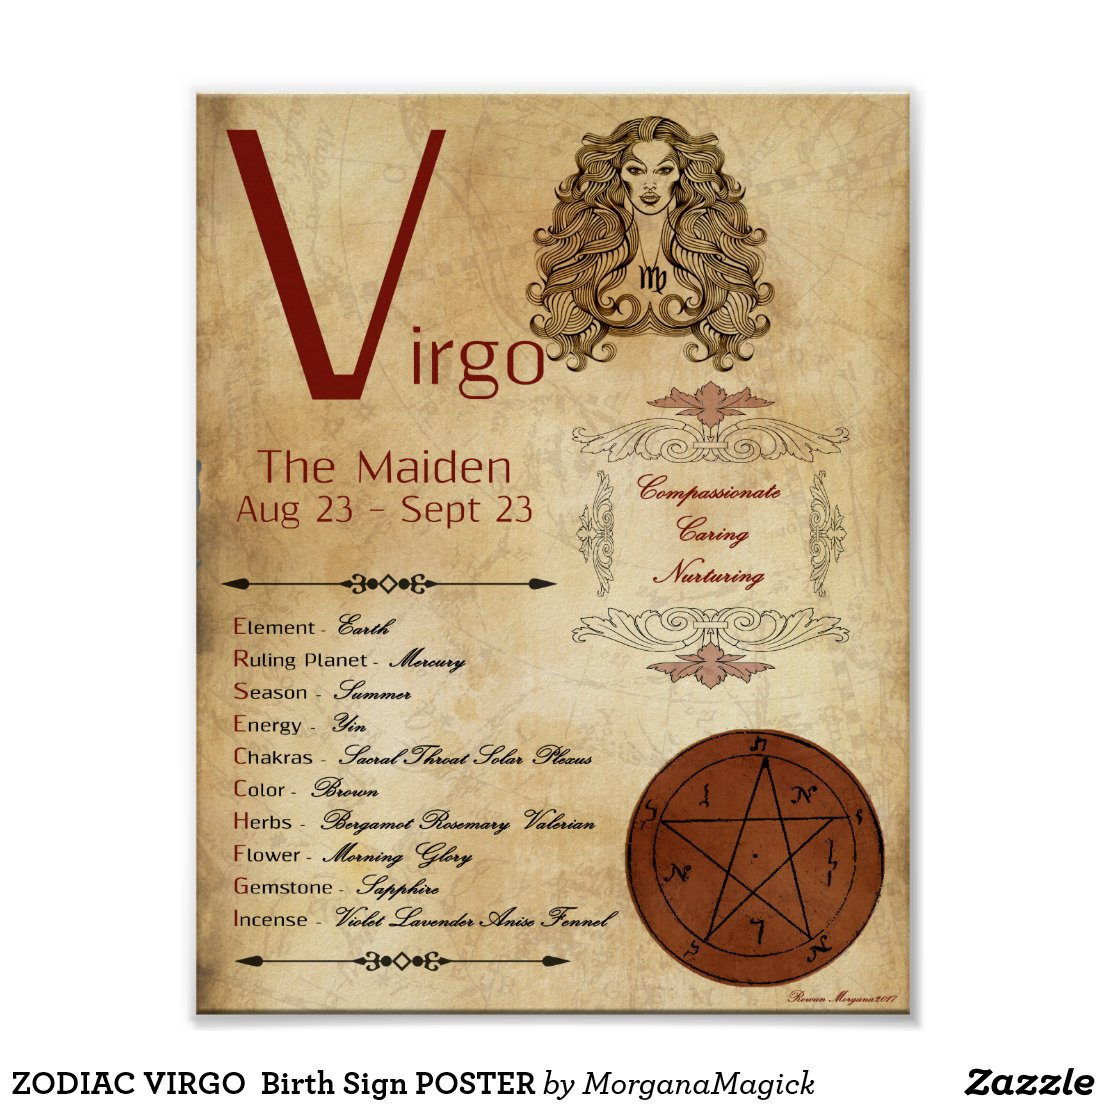 ZODIAC VIRGO  Birth Sign POSTER